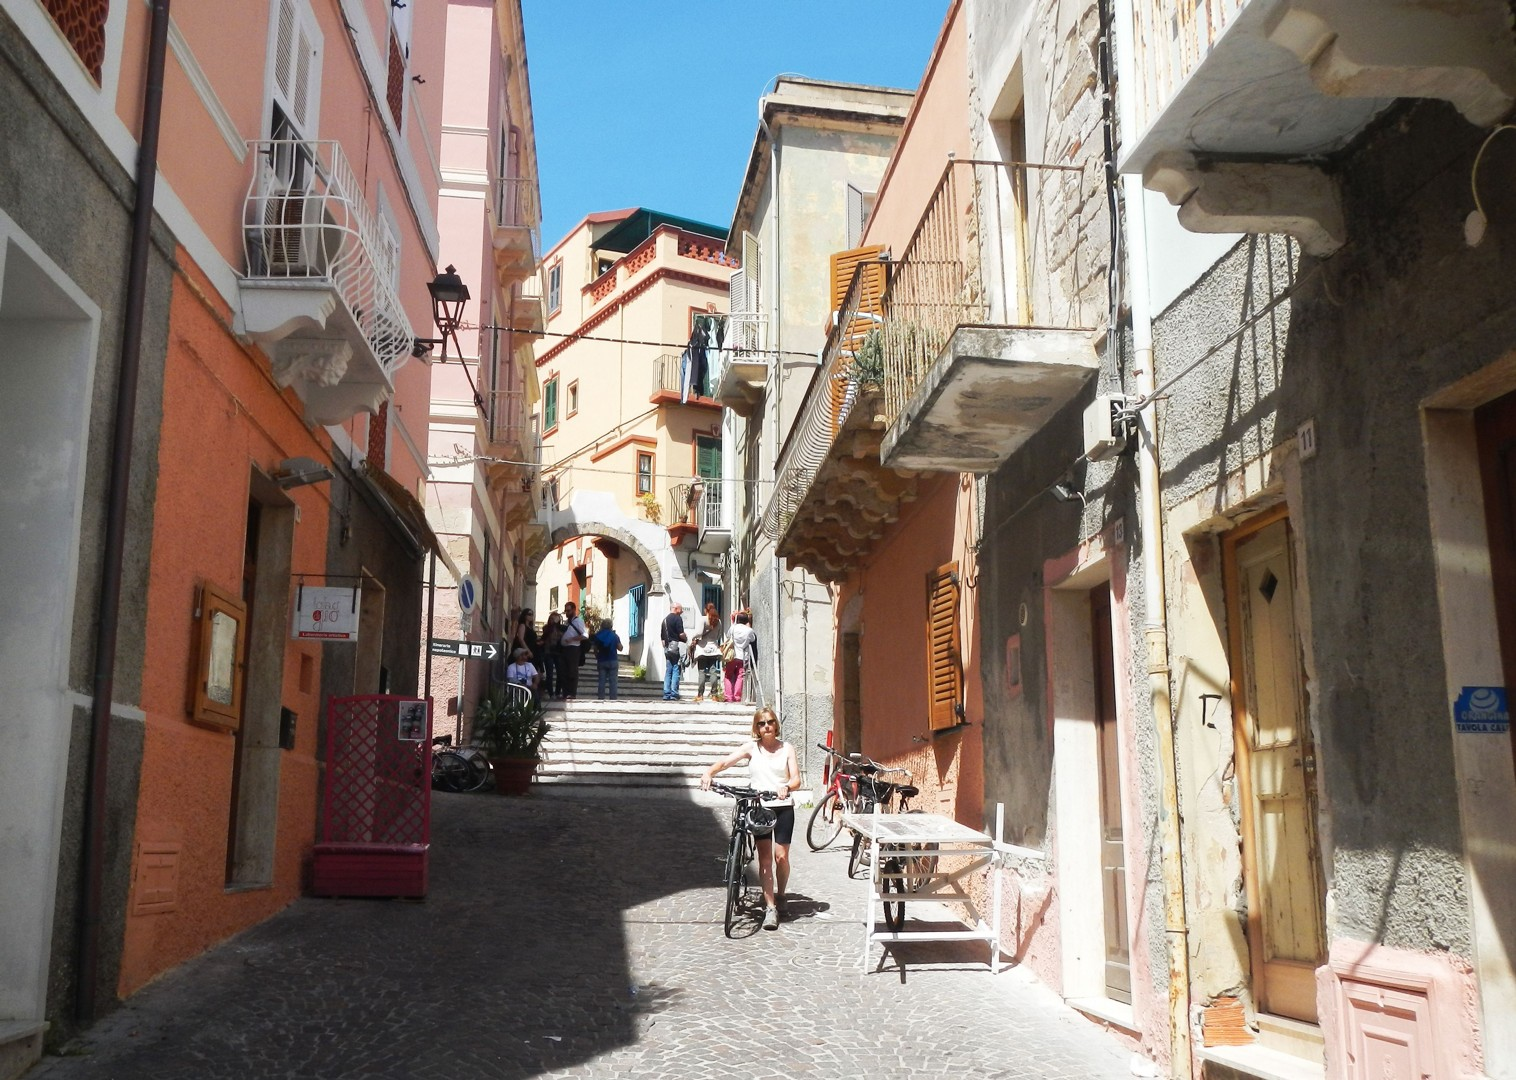 calaforte-san-pietro-town-sardinia.jpg - Italy - Sardinia - Island Flavours - Self-Guided Leisure Cycling Holiday - Leisure Cycling